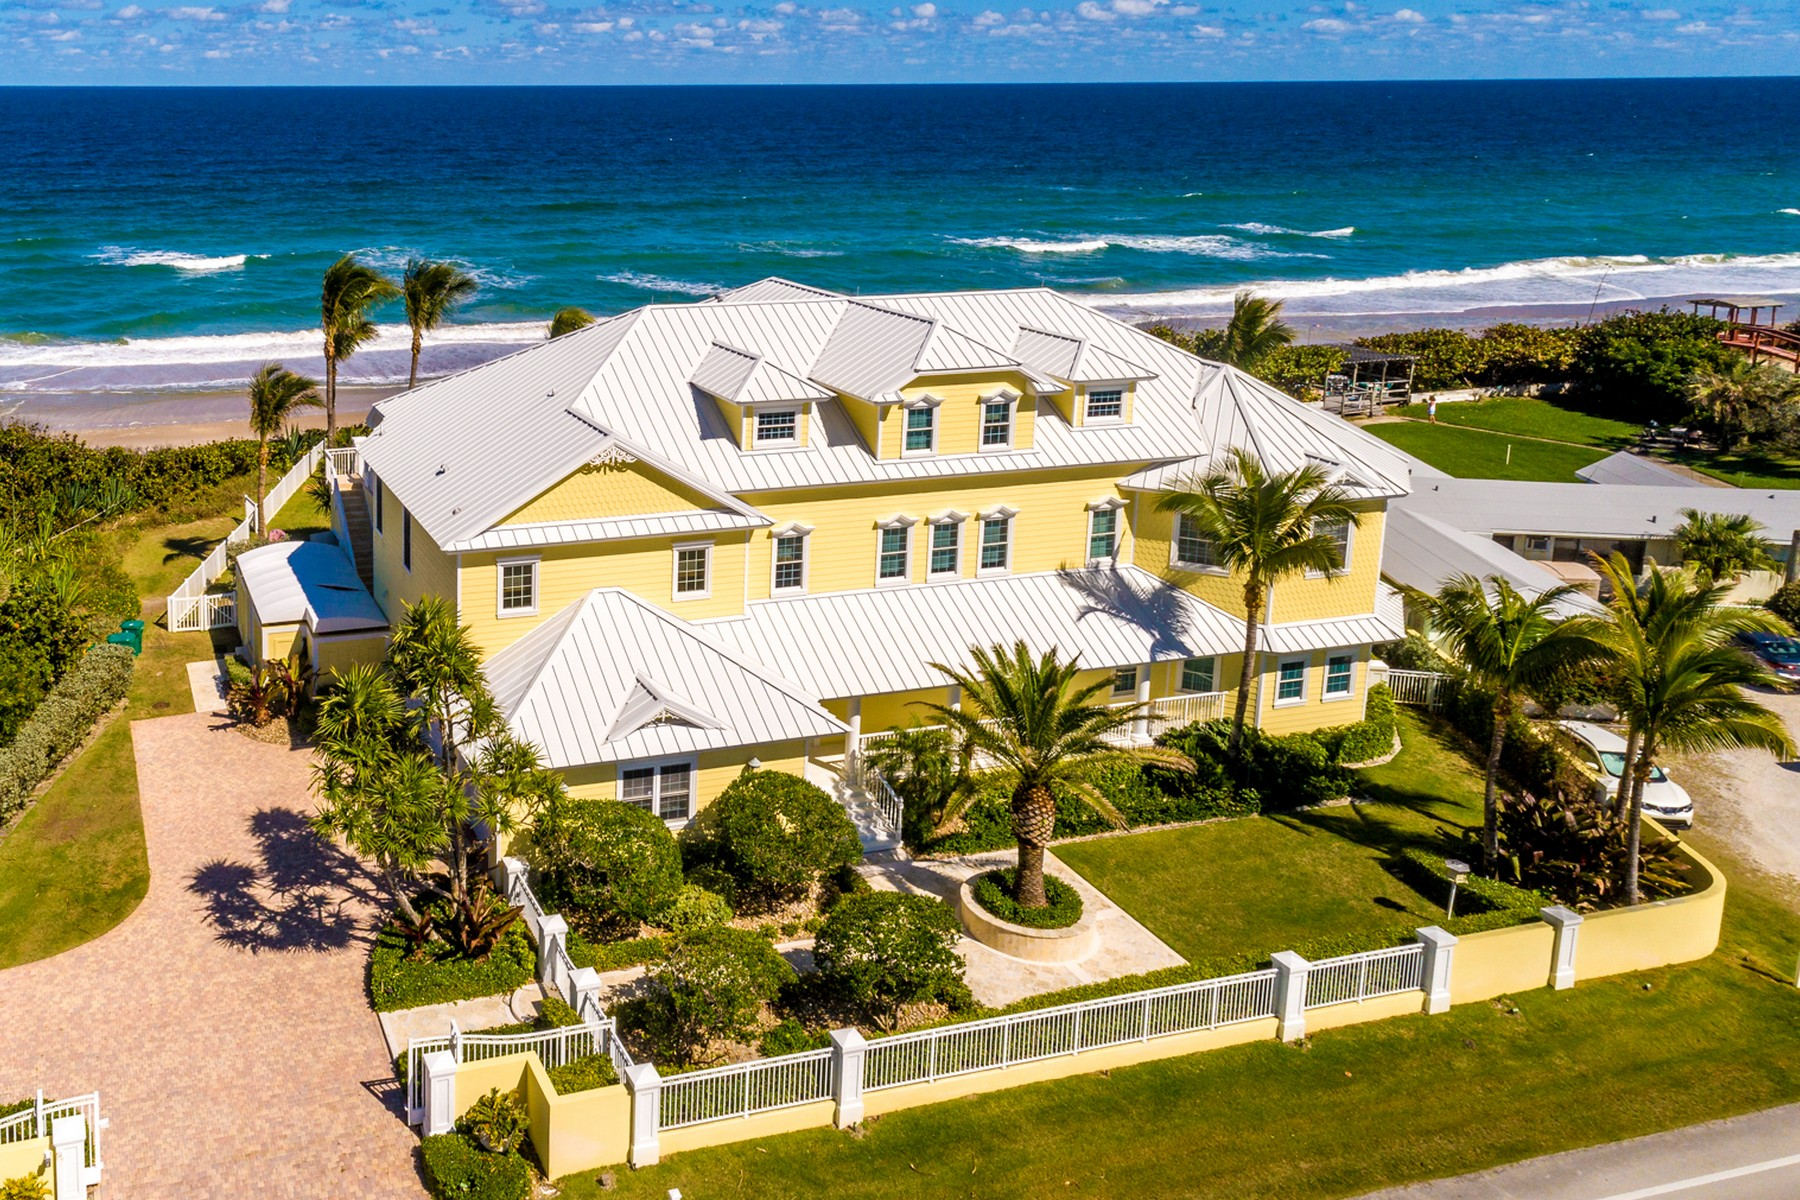 Property のために 売買 アット Gorgeous Tropically Landscaped Home with Endless Ocean Vistas 5045 S Highway A1A Melbourne Beach, フロリダ 32951 アメリカ